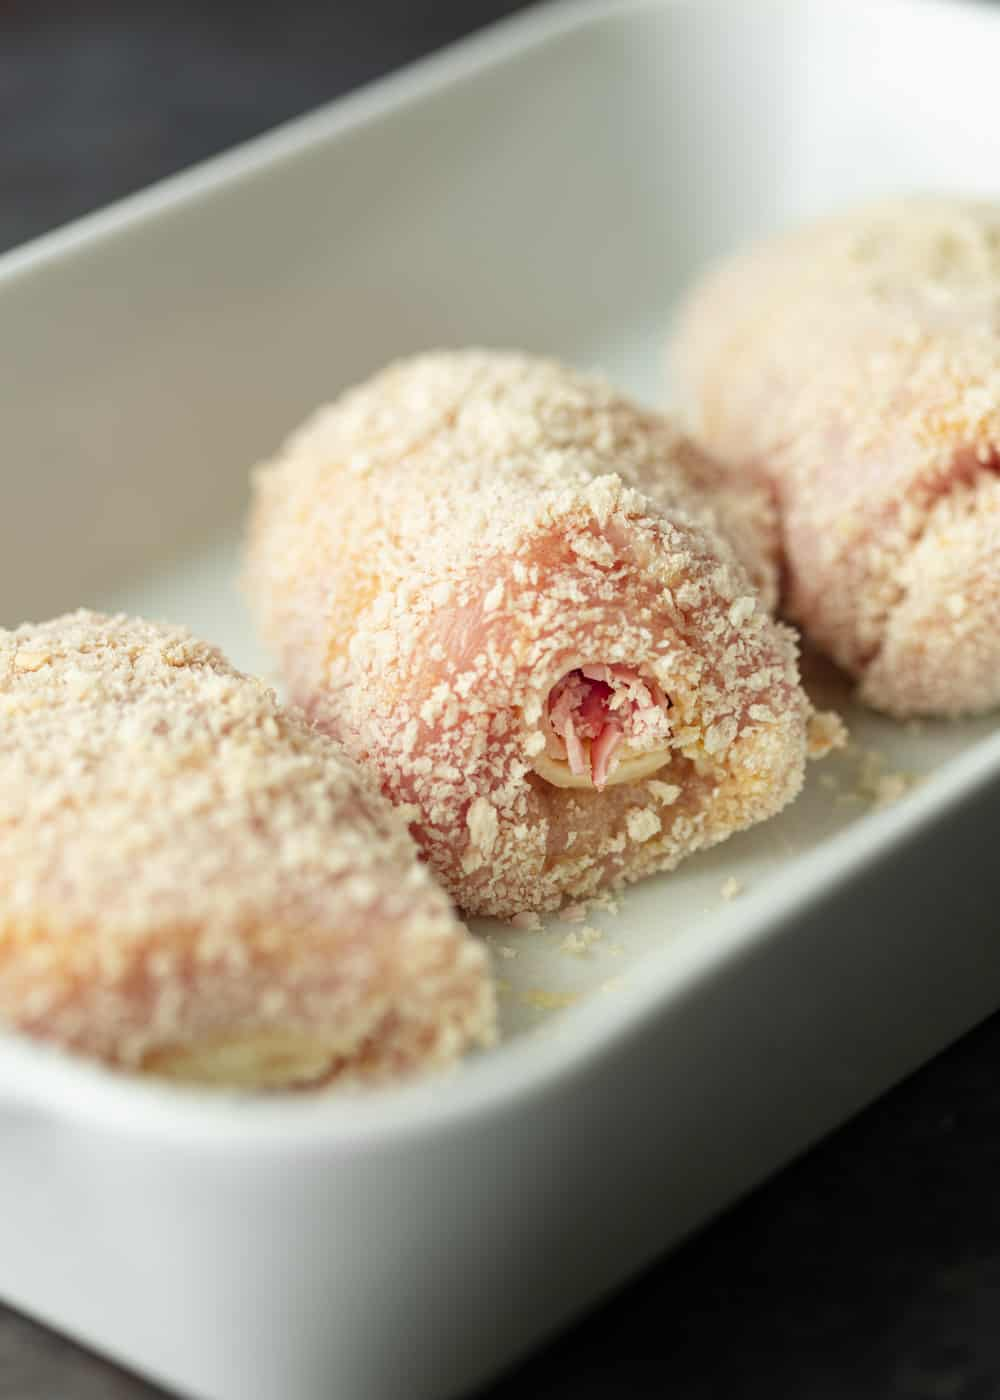 3 raw chicken breasts rolled up with ham and cheese, coated in panko breadcrumbs